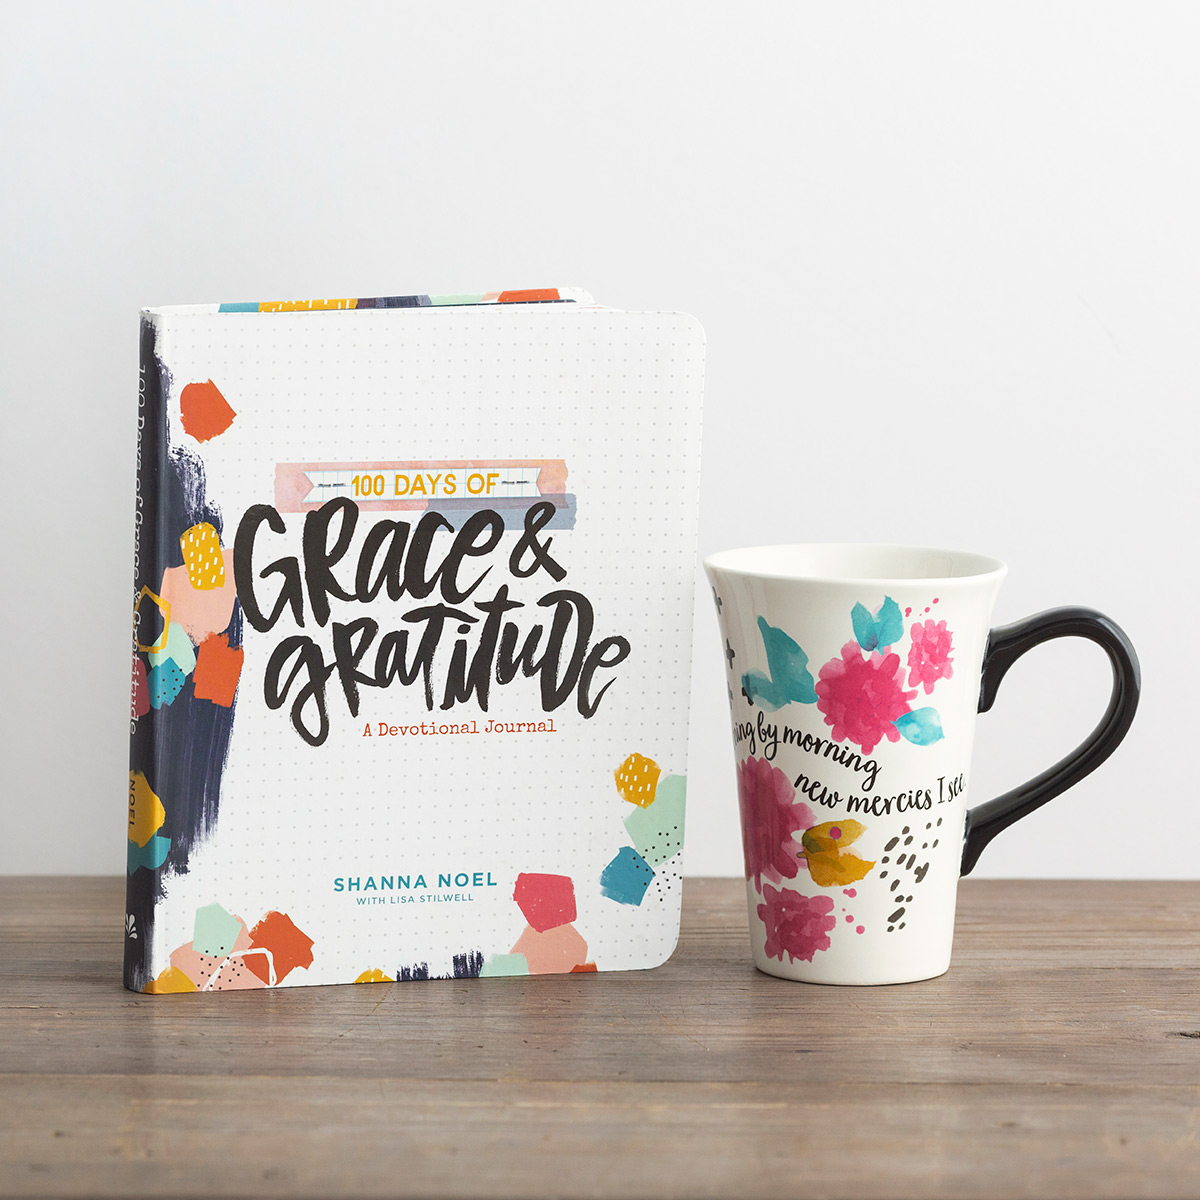 100 Days of Grace & Gratitude Book & Illustrated Faith Mug Gift Set